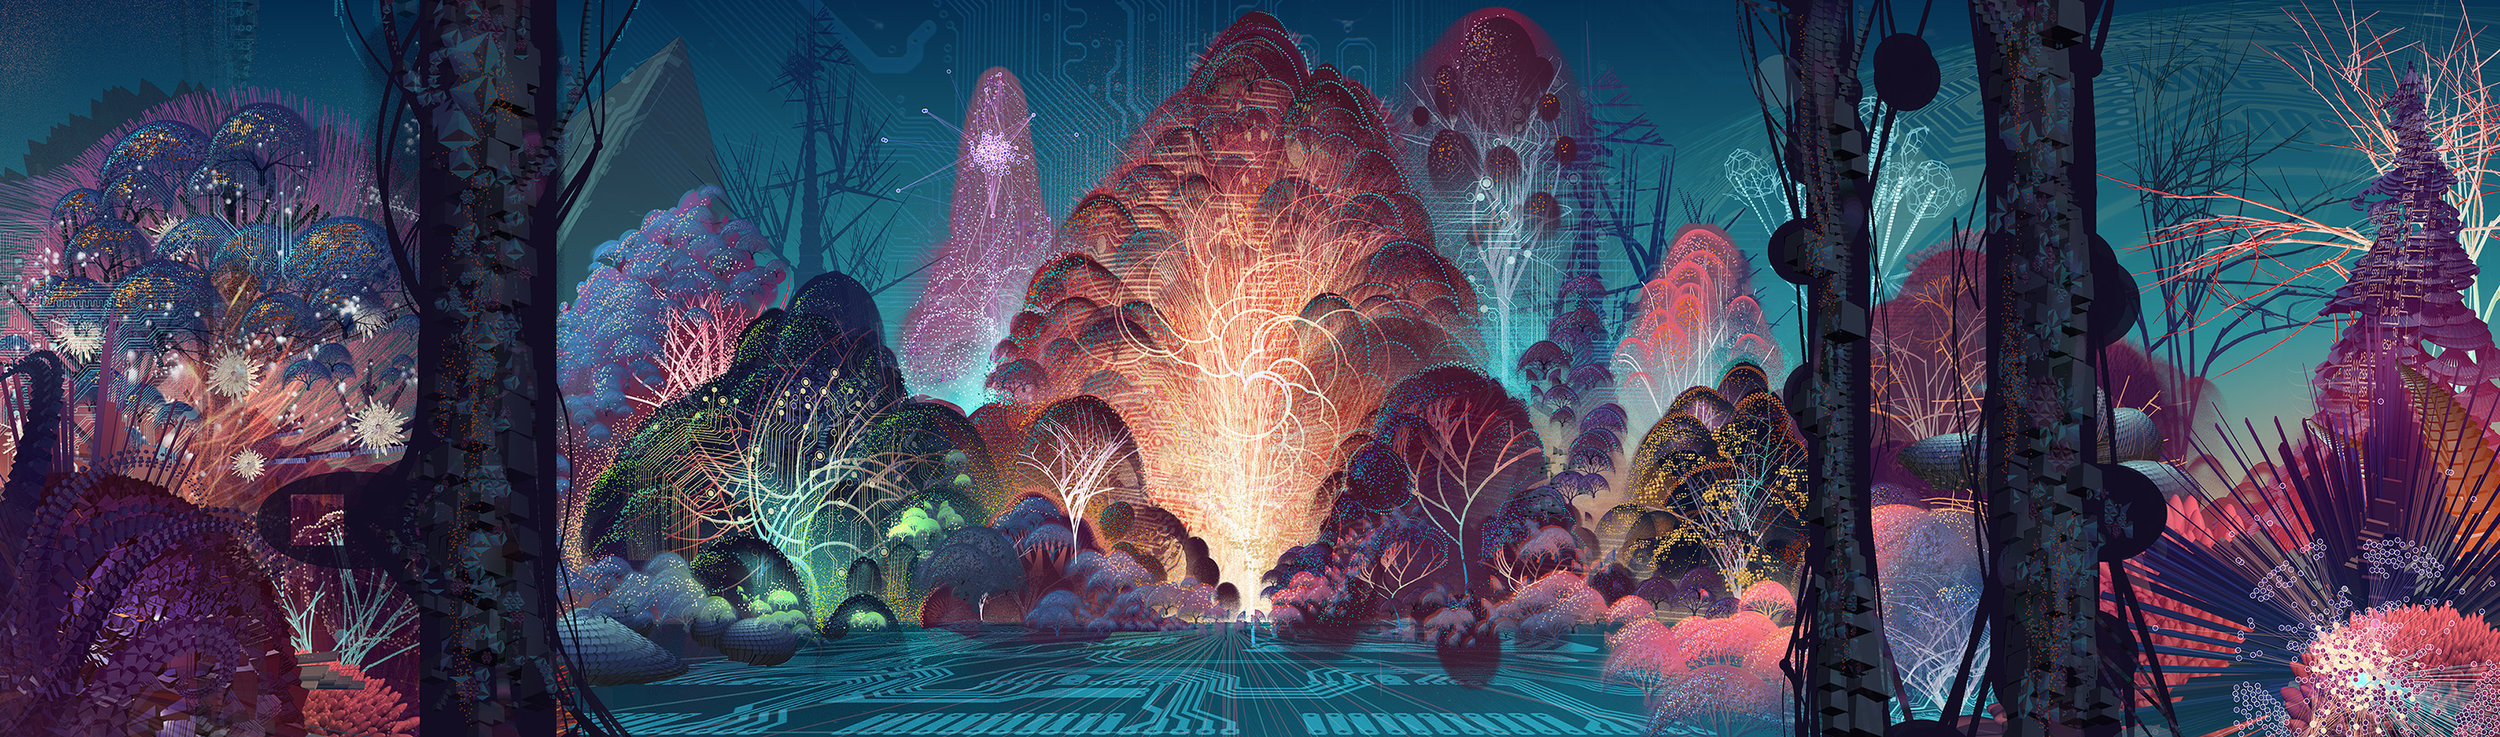 Fractal Forest, by Android Jones